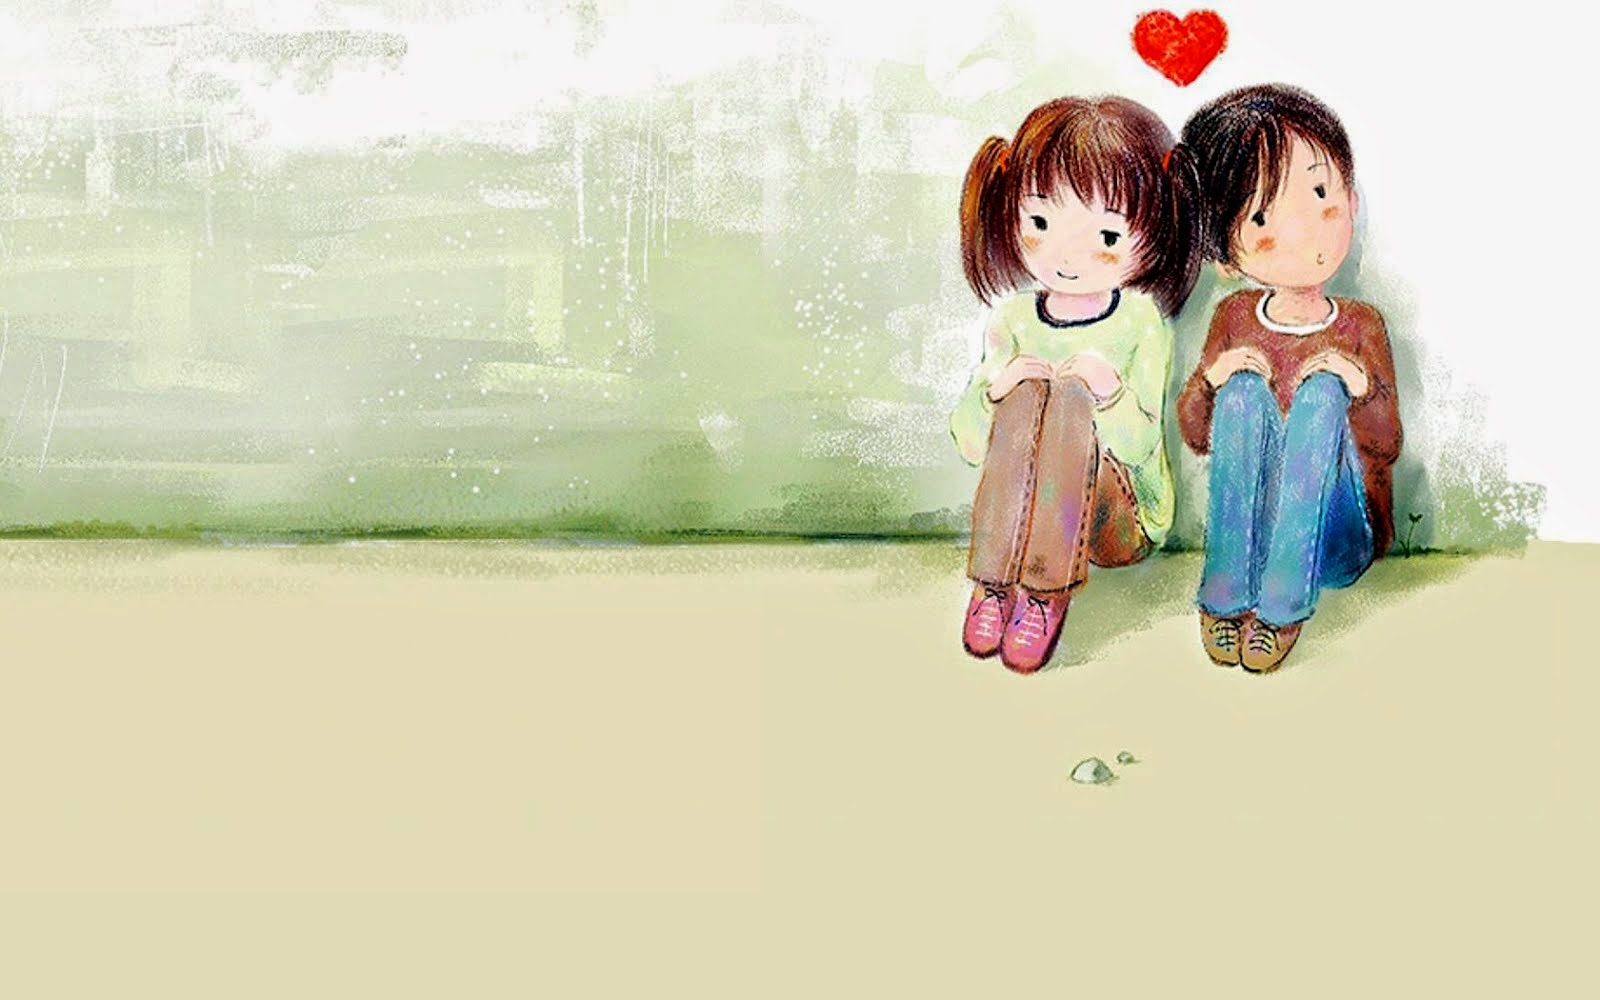 Hd Wallpaper Of cartoon Love couple : cute Little cartoon couple In Love HD Wallpaper Best Love HD Wallpapers